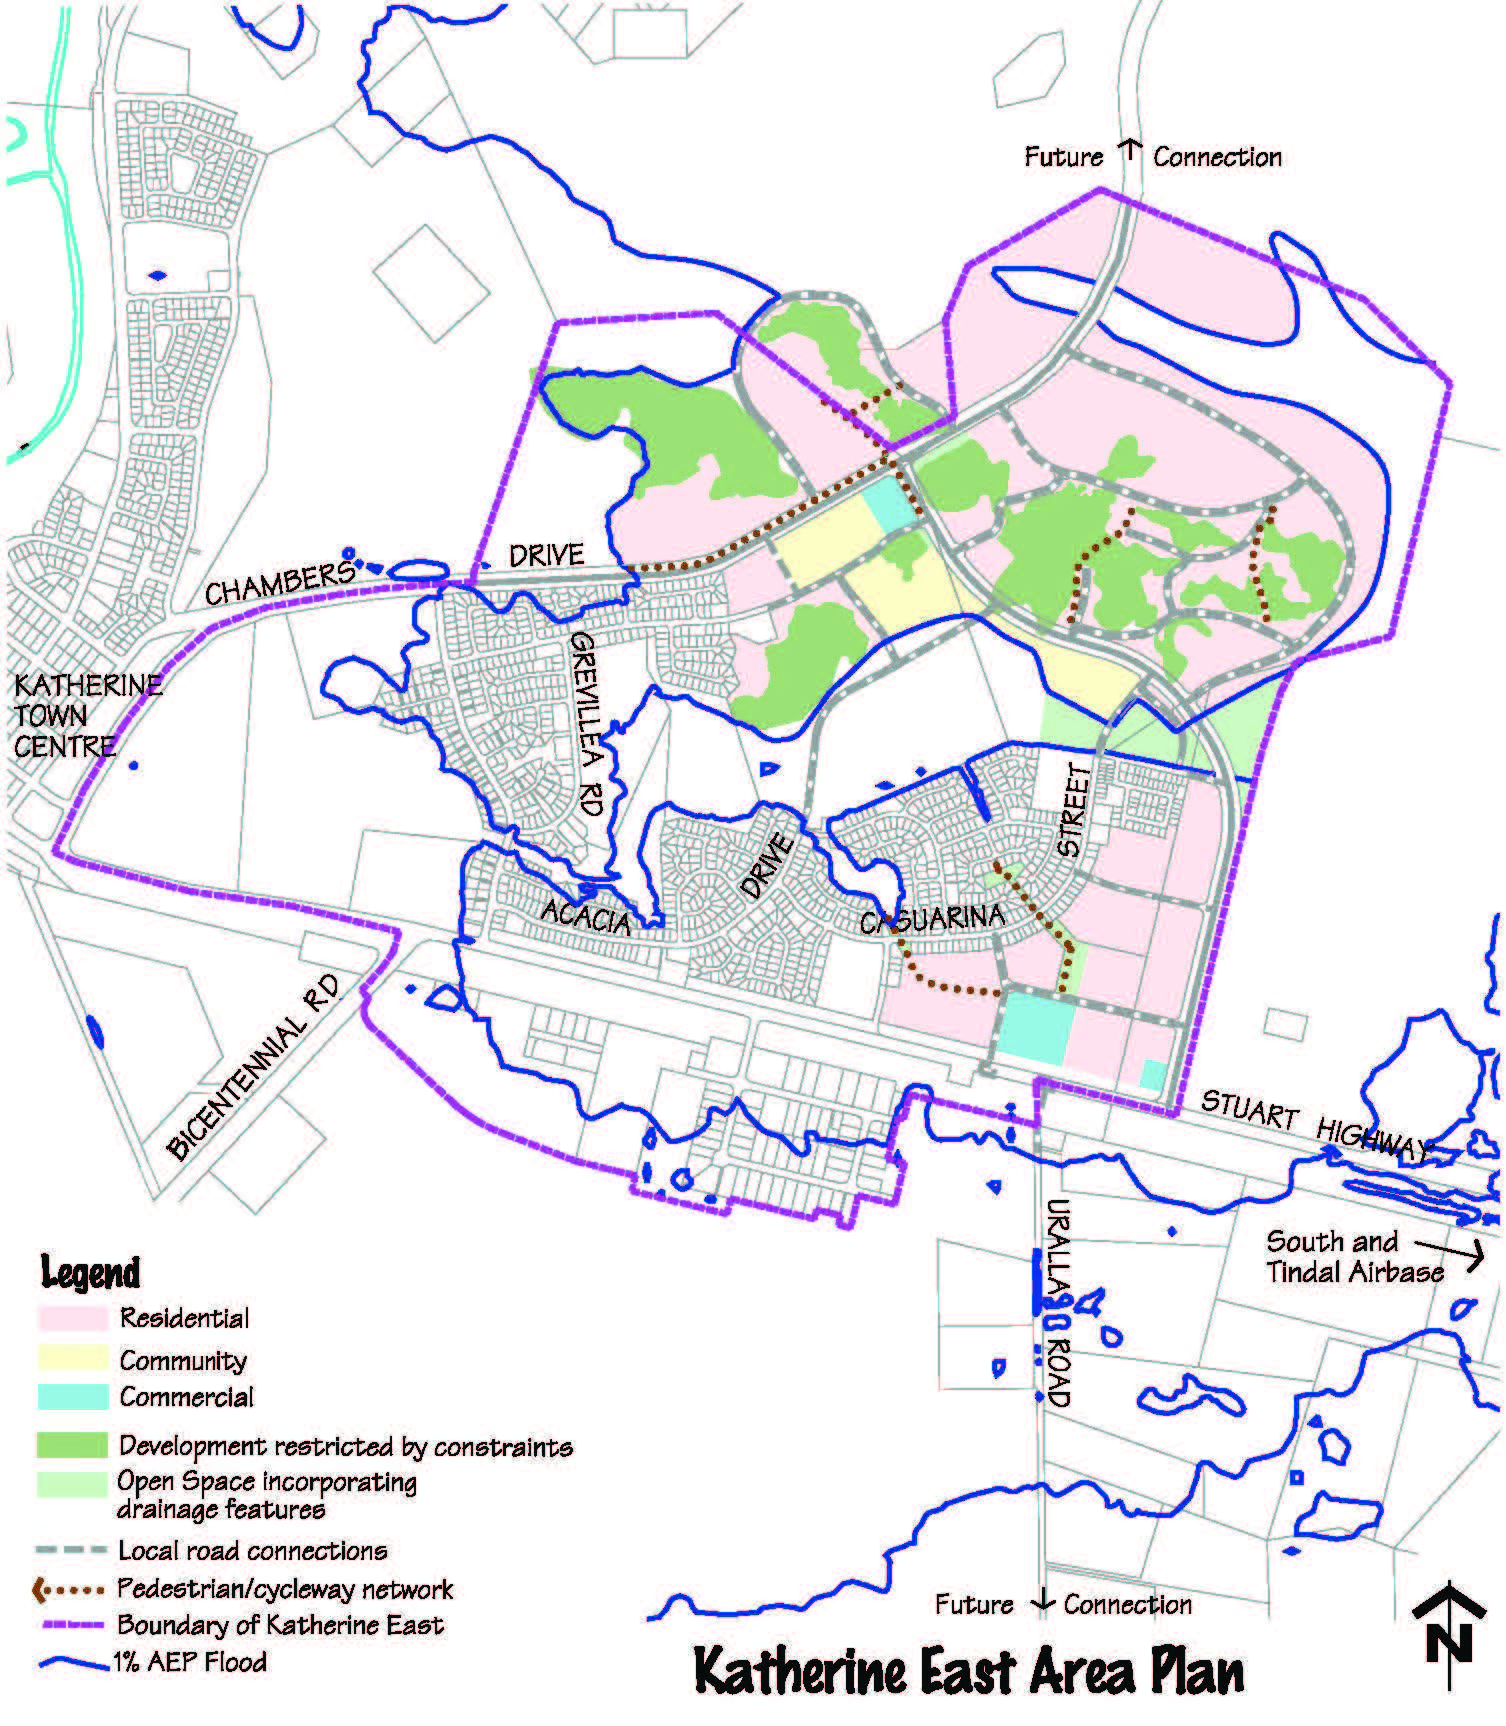 Map - Draft Katherine East Area Plan, including capable land